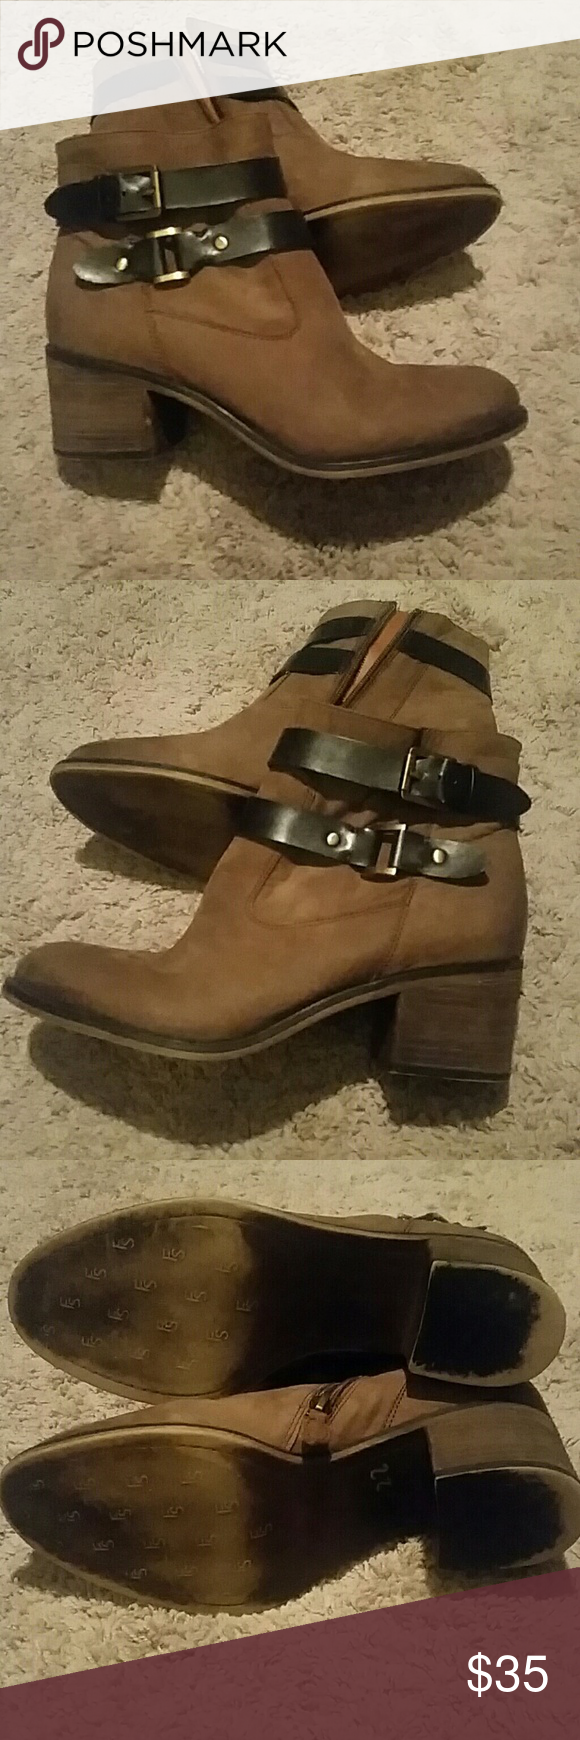 Franco Sarto booties Used Franco Sarto brown ankle boots size 9M, buckle is gold tone, Franco Sarto Shoes Ankle Boots & Booties